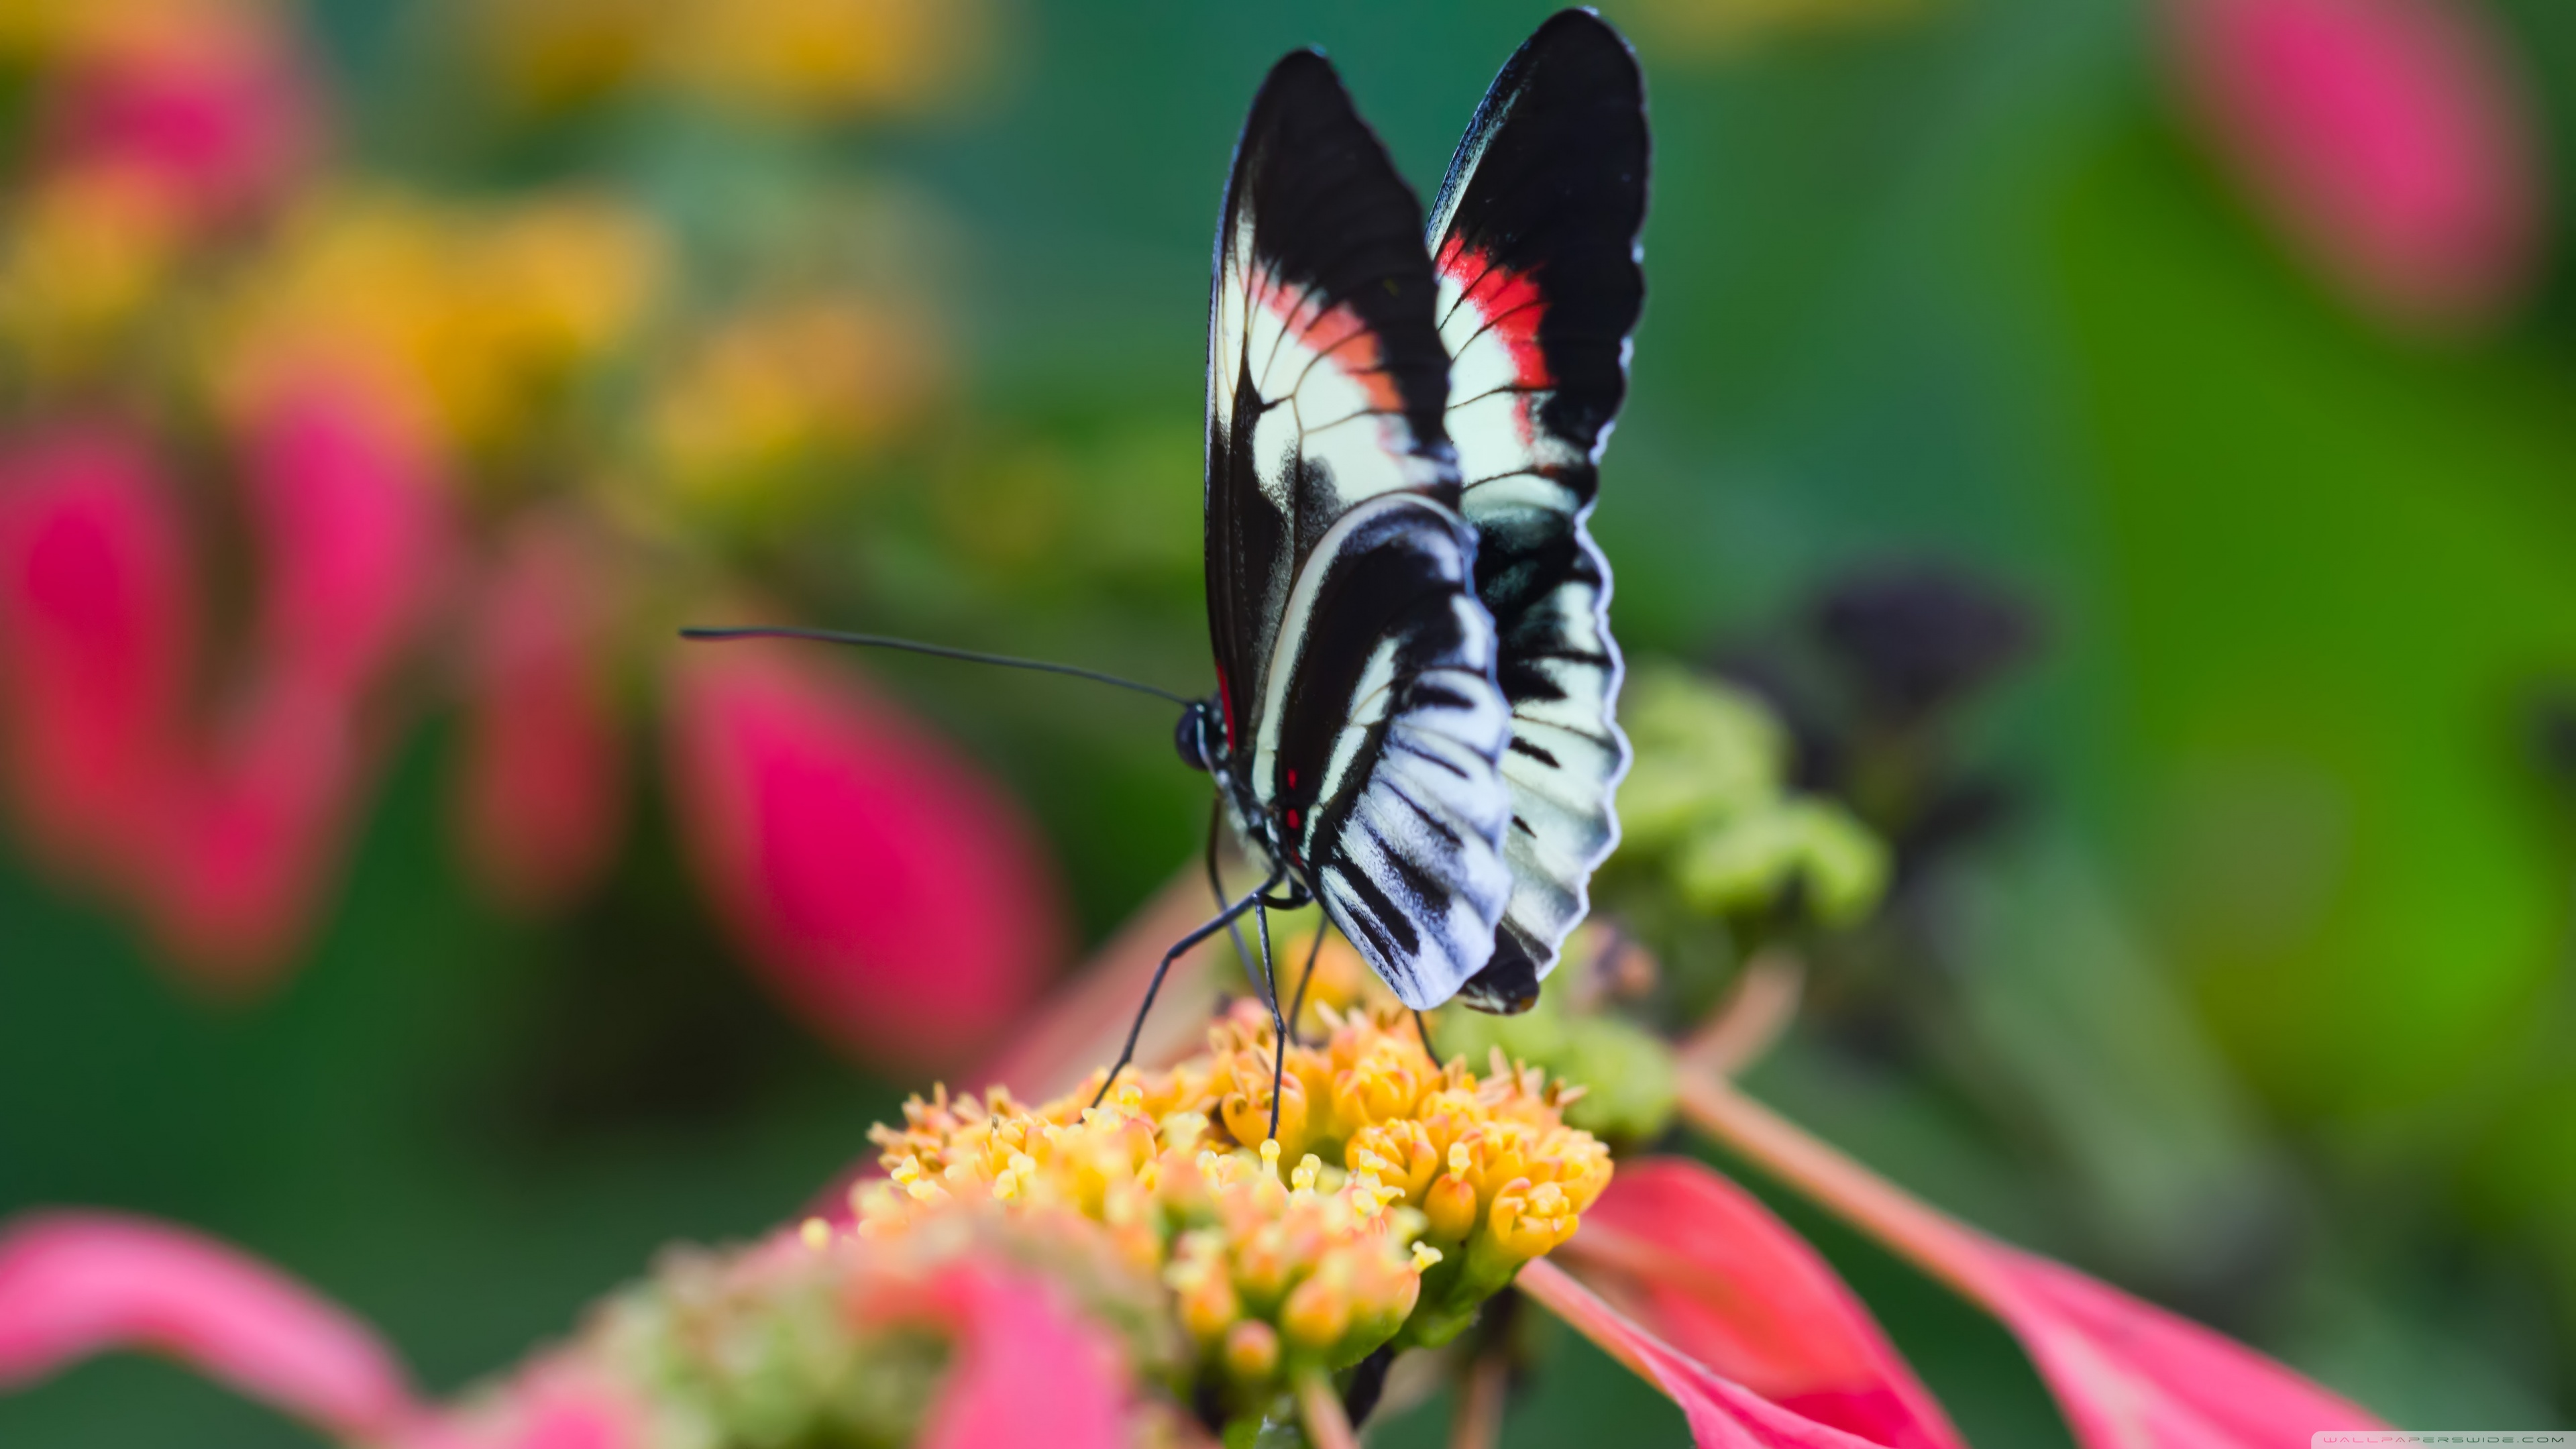 Beautiful Butterfly On Flower Macro Wallpapers 4k Ultra Hd Butterfly 485028 Hd Wallpaper Backgrounds Download